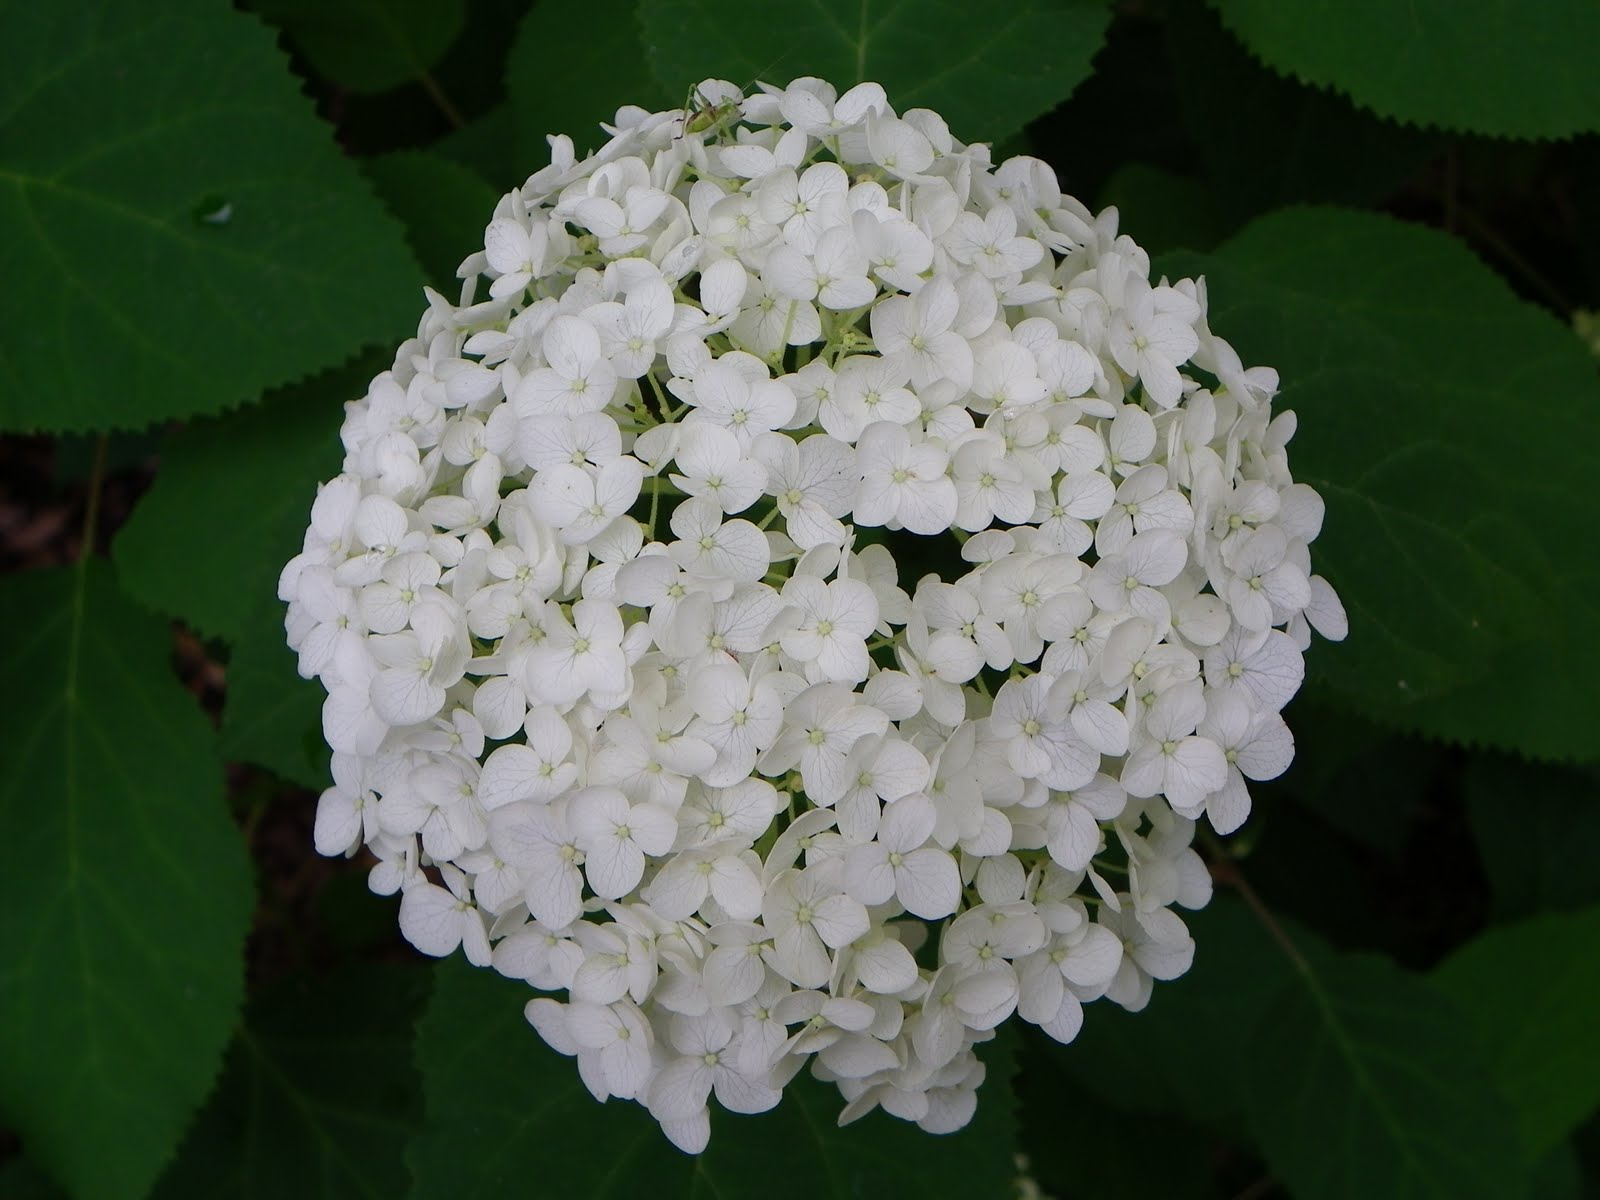 Native In The City: Hydrangea Arborescens 'Annabelle